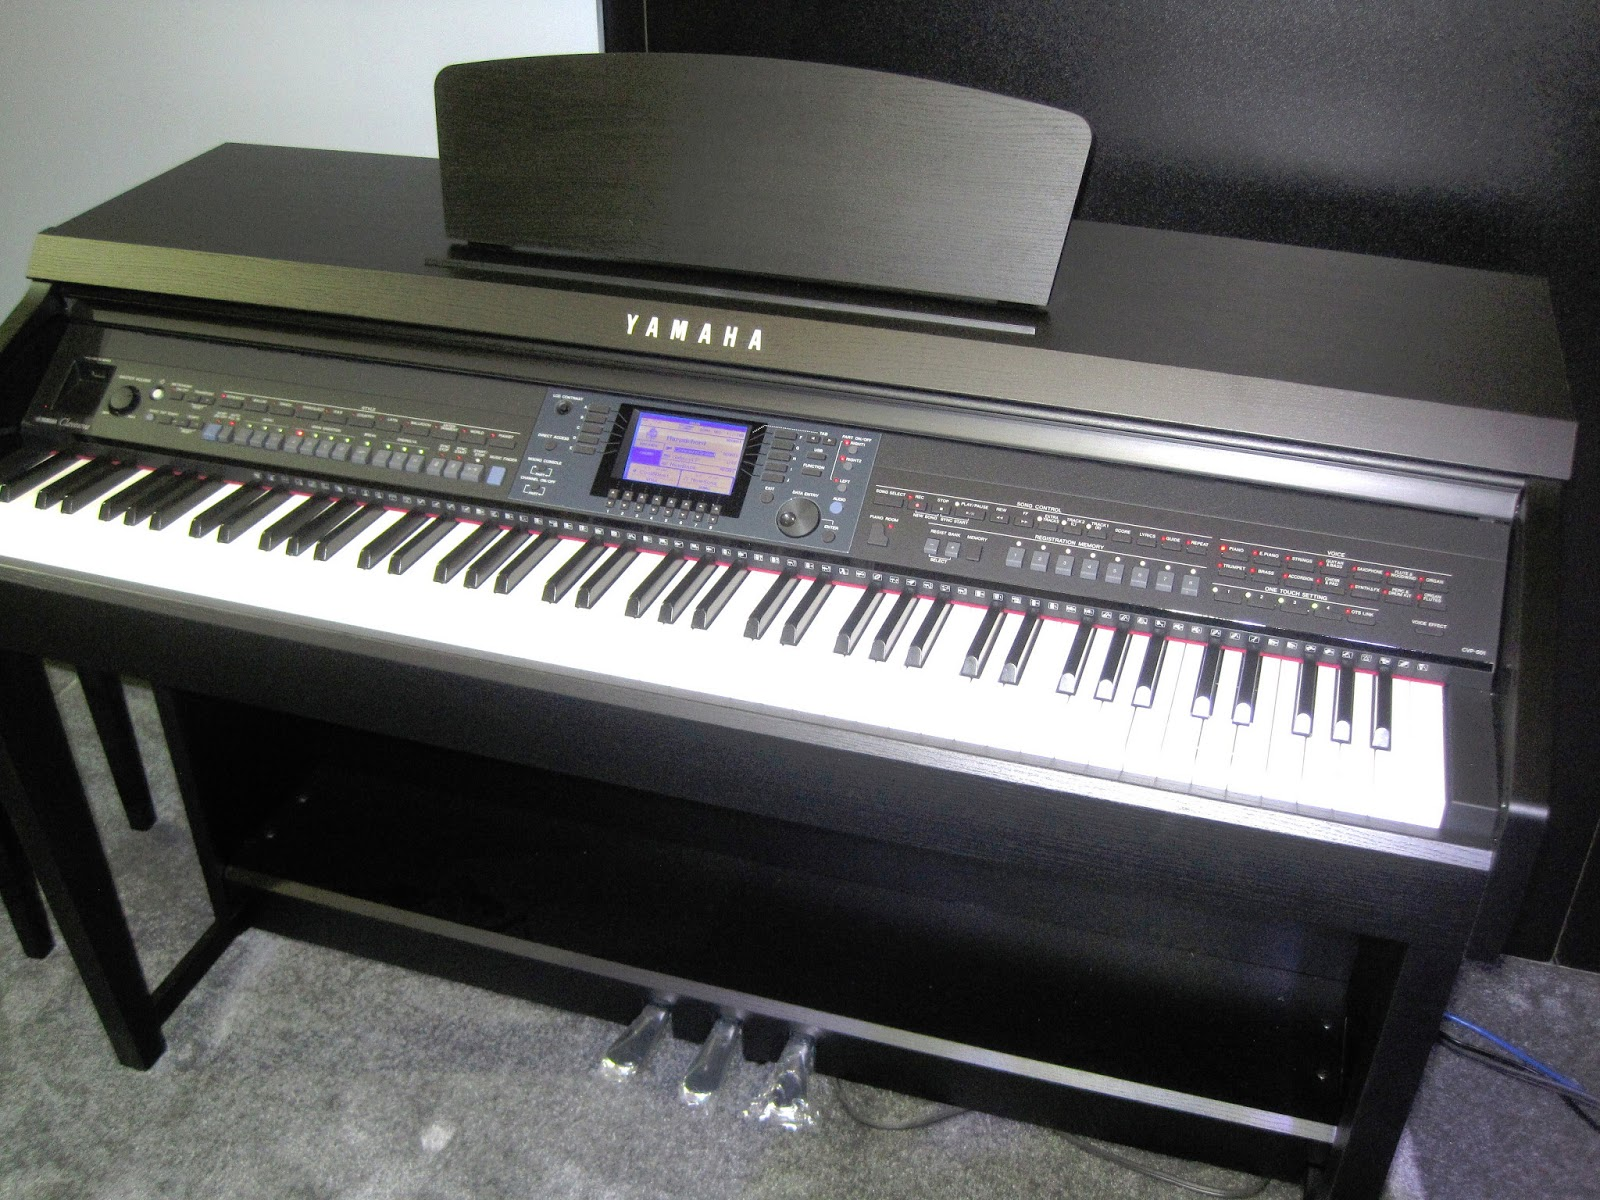 az piano reviews review yamaha cvp601 vs roland hp506 digital piano completely different. Black Bedroom Furniture Sets. Home Design Ideas